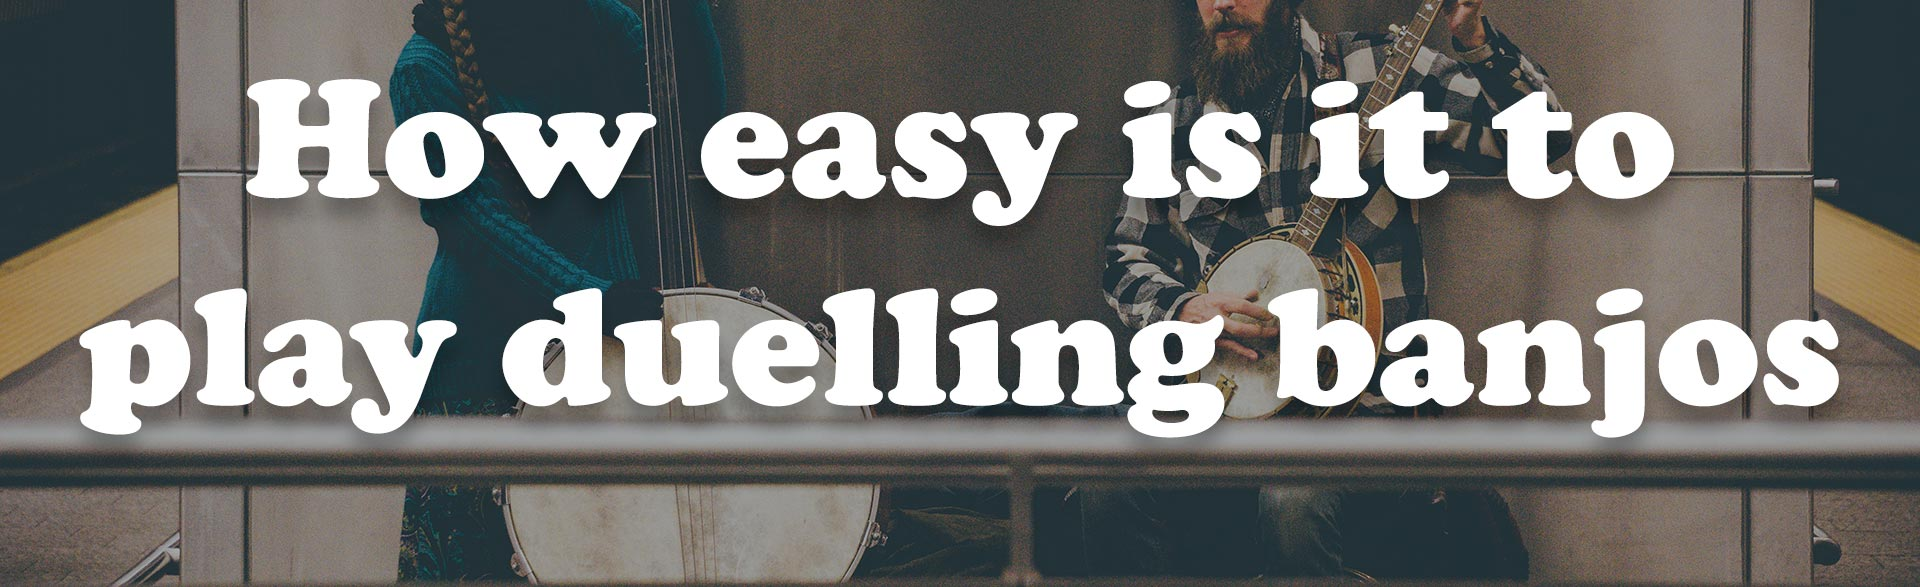 Post Thumbnail for the Post: How easy is it to play duelling banjos Viewable at https://jofflowson.com/how-easy-duelling-banjos